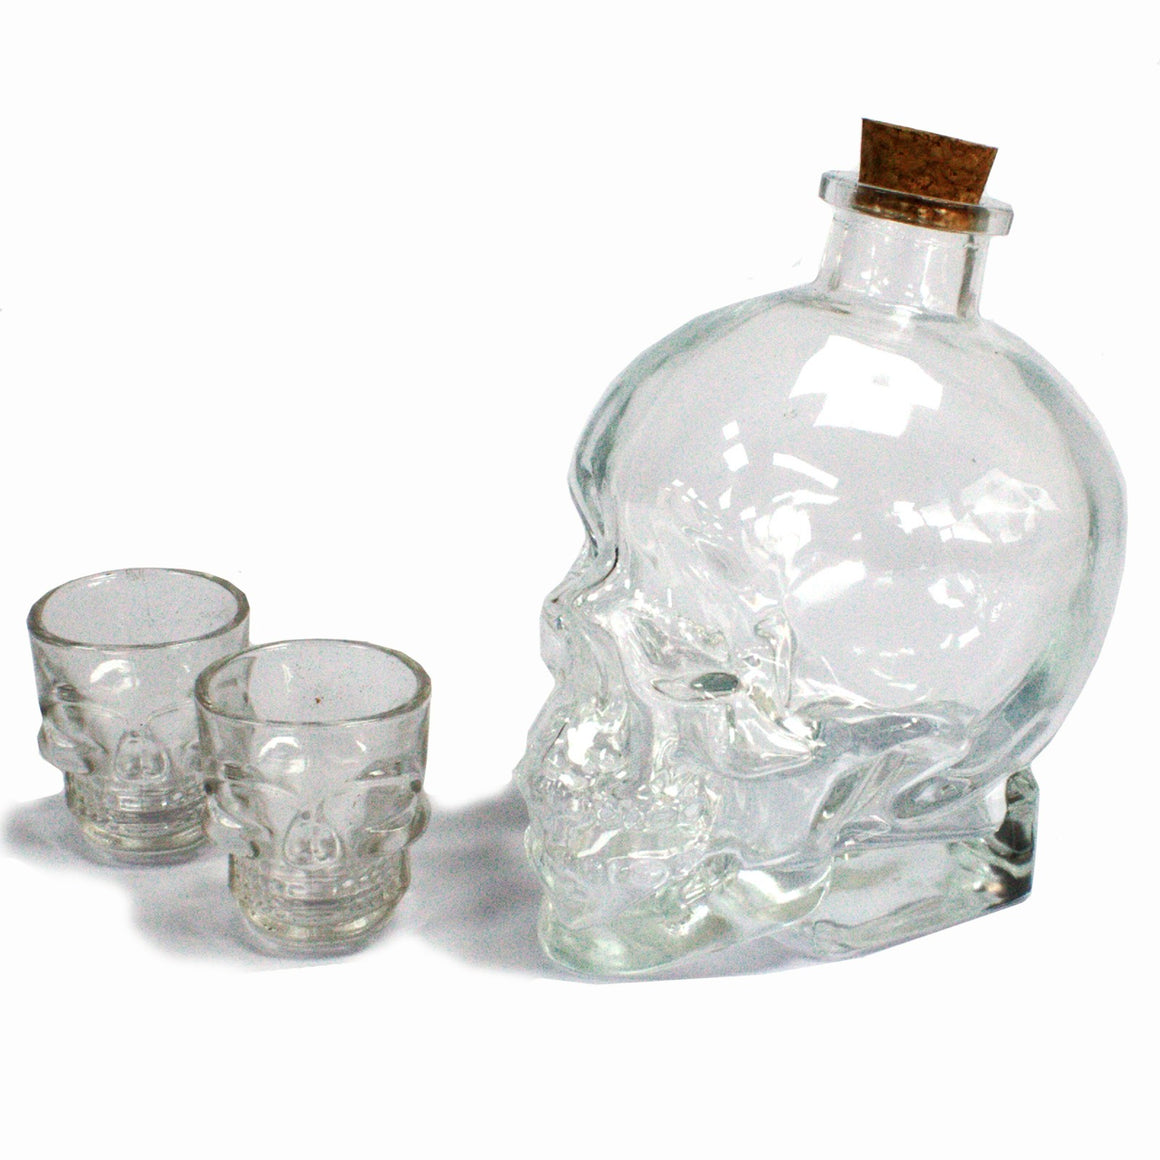 Demon Drink Set - With a Clear Head